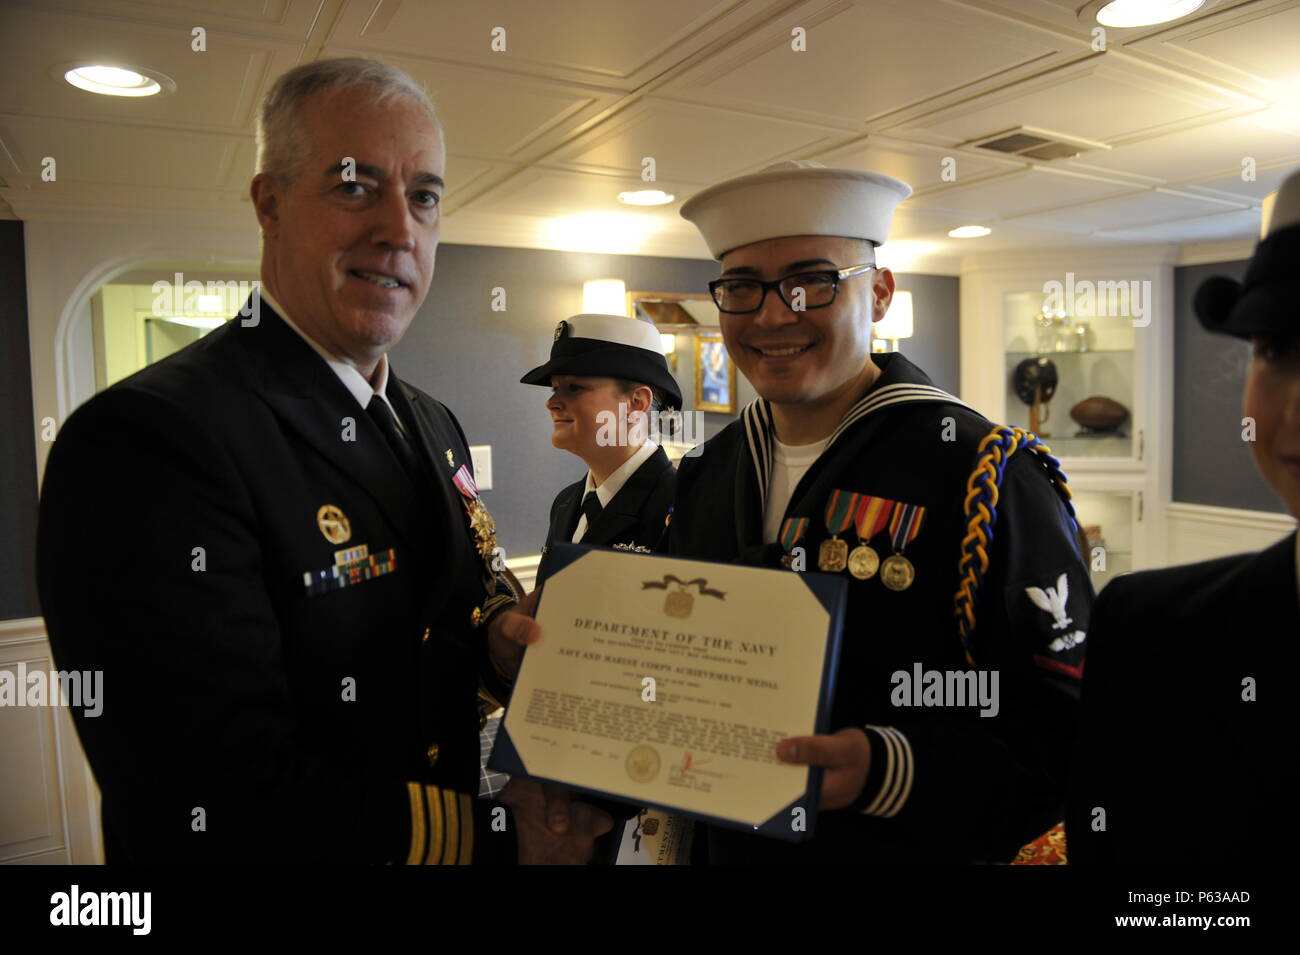 NEWPORT NEWS, Va., (April 8, 2016) A Pre-Commissioning Unit Gerald R. Ford (CVN 78) command choir Sailor receives a Navy and Marine Corps Achievement medal from the ship's Commanding Officer Capt. John F. Meier.  Ford is the first of a new class of aircraft carriers currently under construction by Huntington Ingalls Newport News Shipbuilding. (U.S. Navy photo by Mass Communication Specialist 3rd Class Matthew Fairchild/Released) - Stock Image